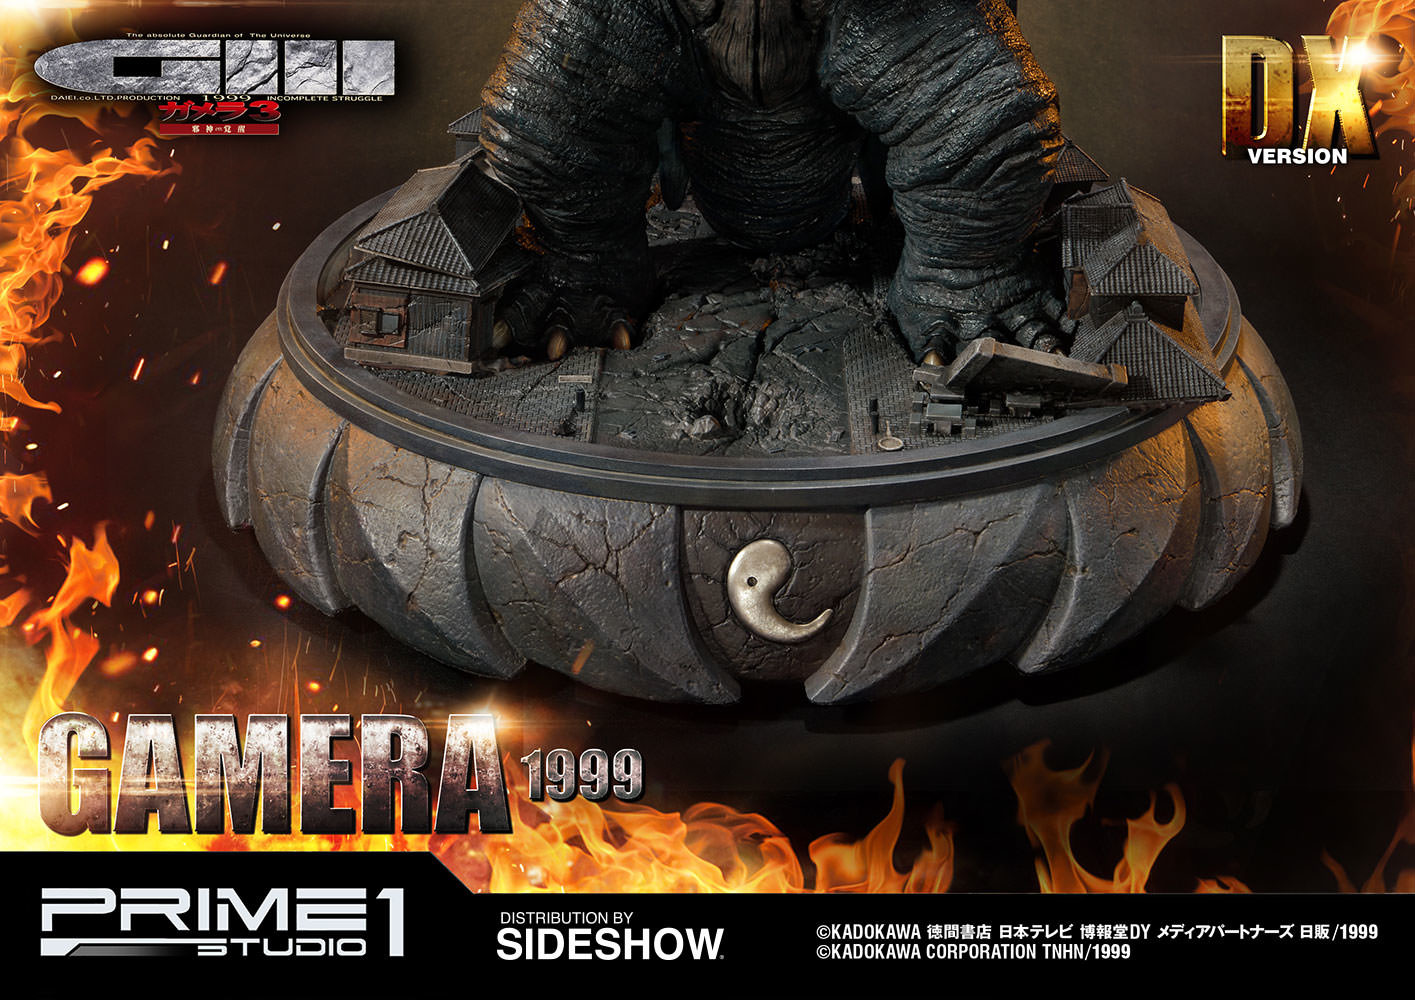 Jesse sandifer gamera3 revenge of iris gamera deluxe version statue prime1 studio 903253 25